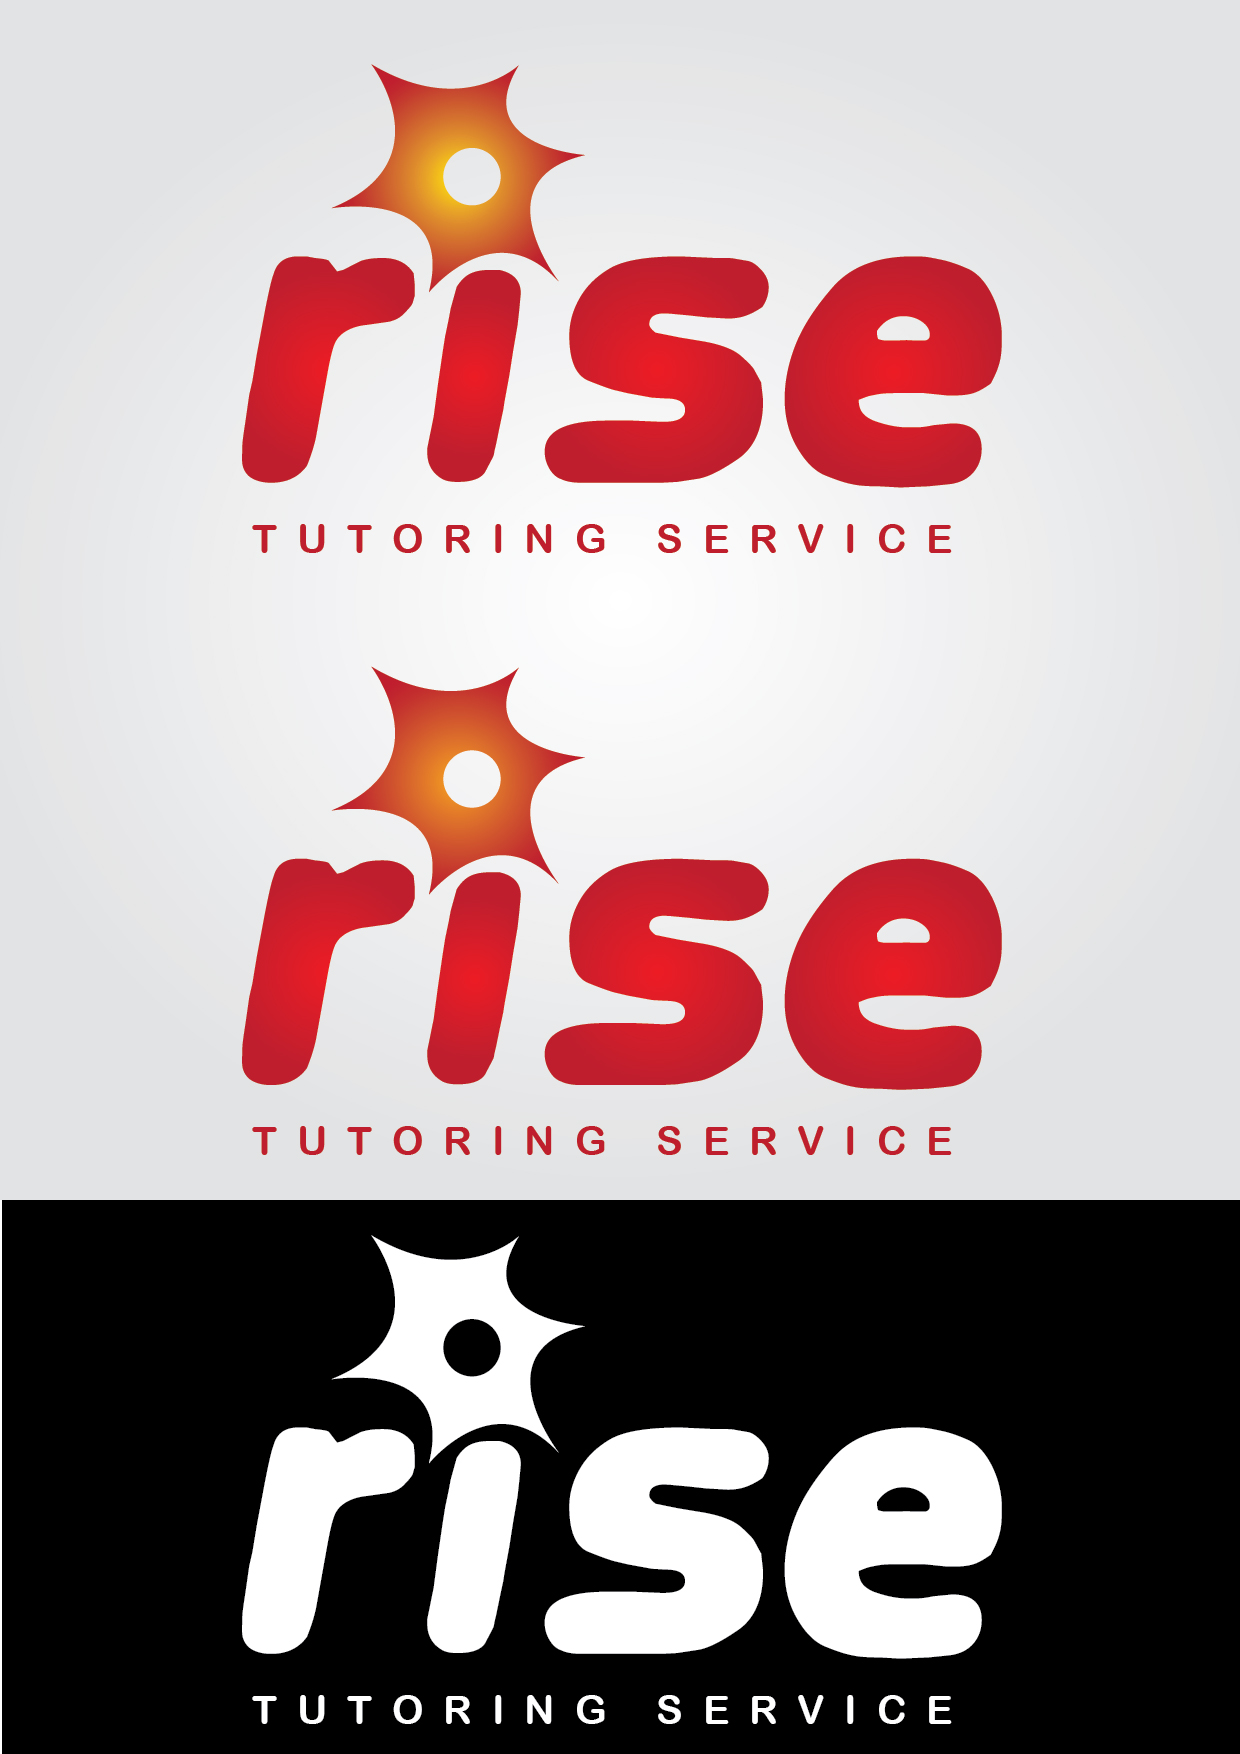 Logo Design by mediaproductionart - Entry No. 127 in the Logo Design Contest Imaginative Logo Design for Rise Tutoring Service.